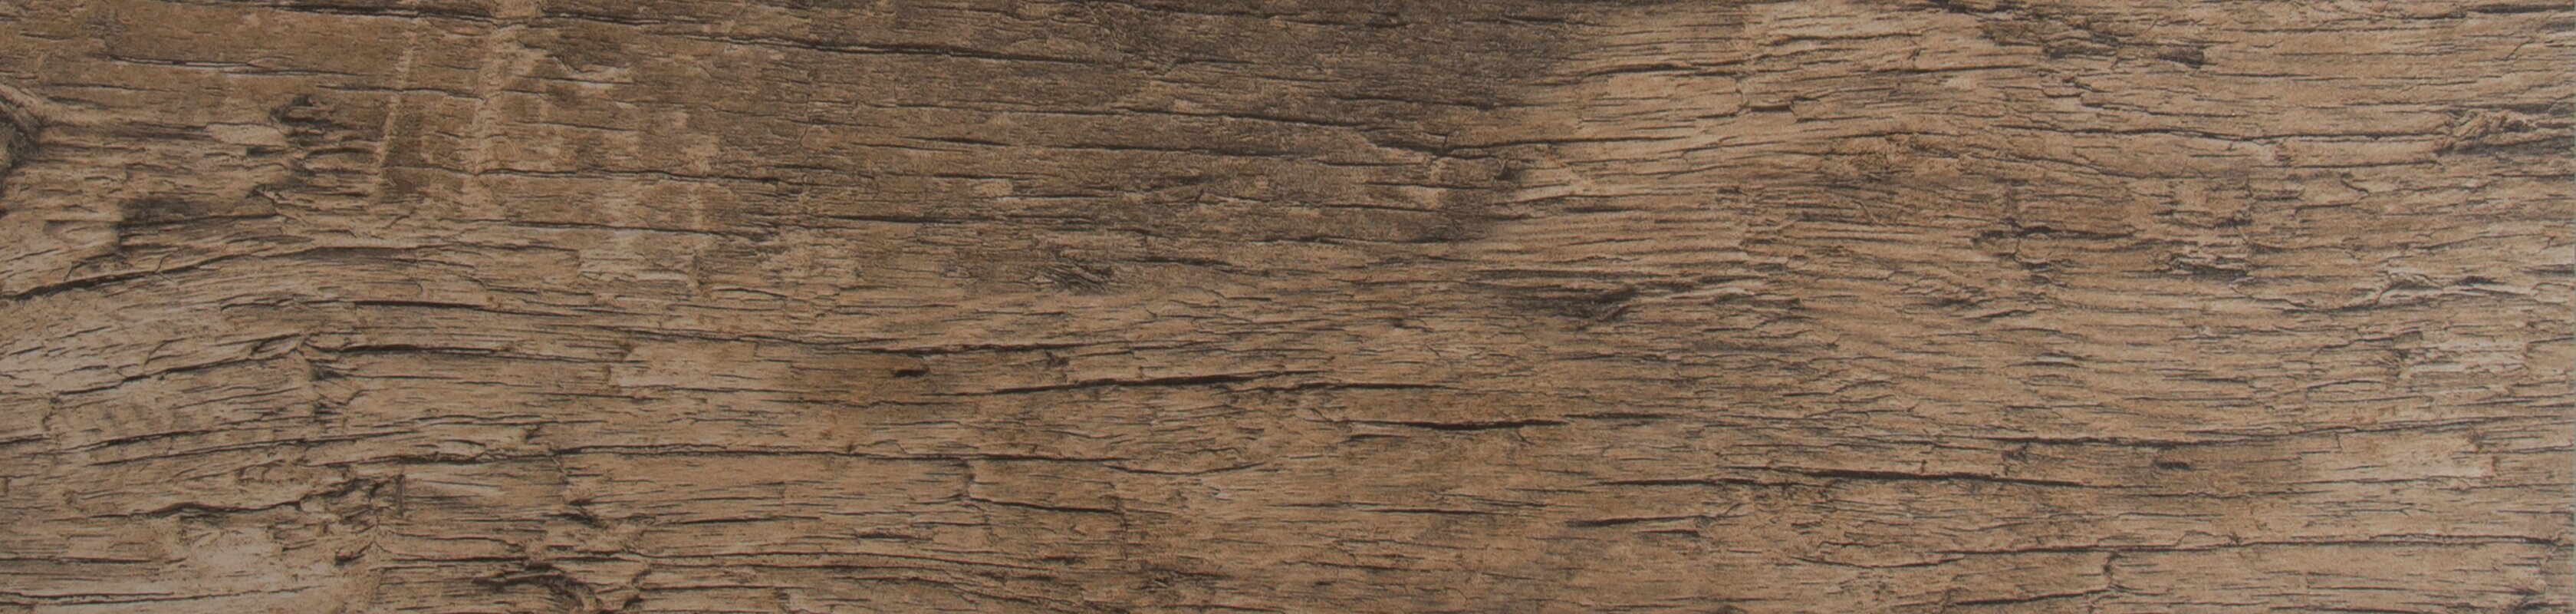 Redwood Natural 6 X 36 Porcelain Wood Tile In Glazed Textured